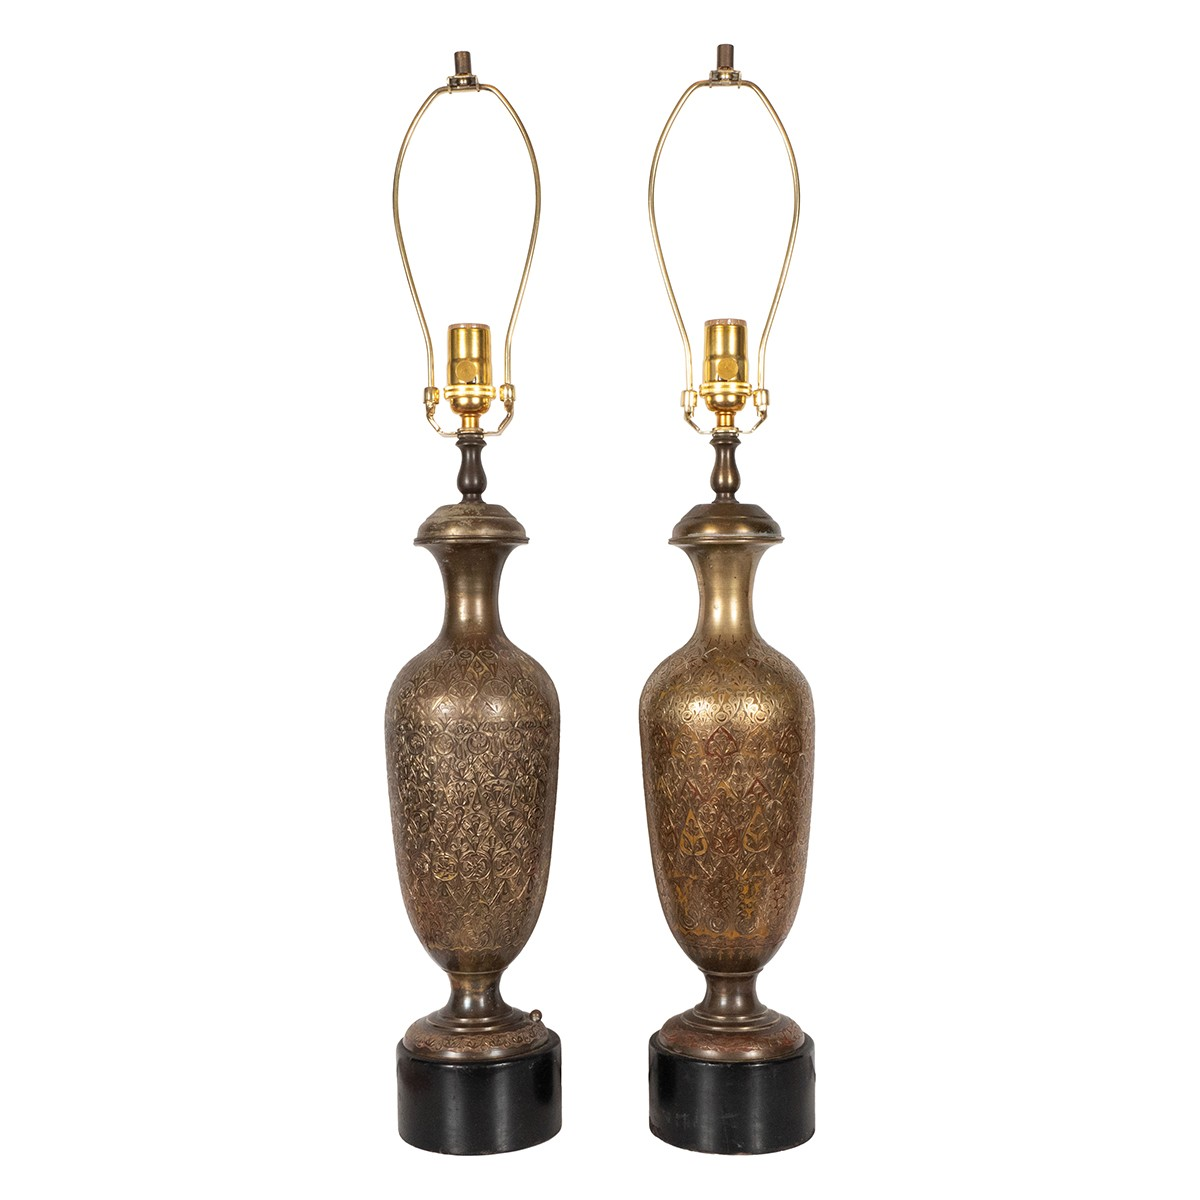 Pair of intricately etched brass table lamps